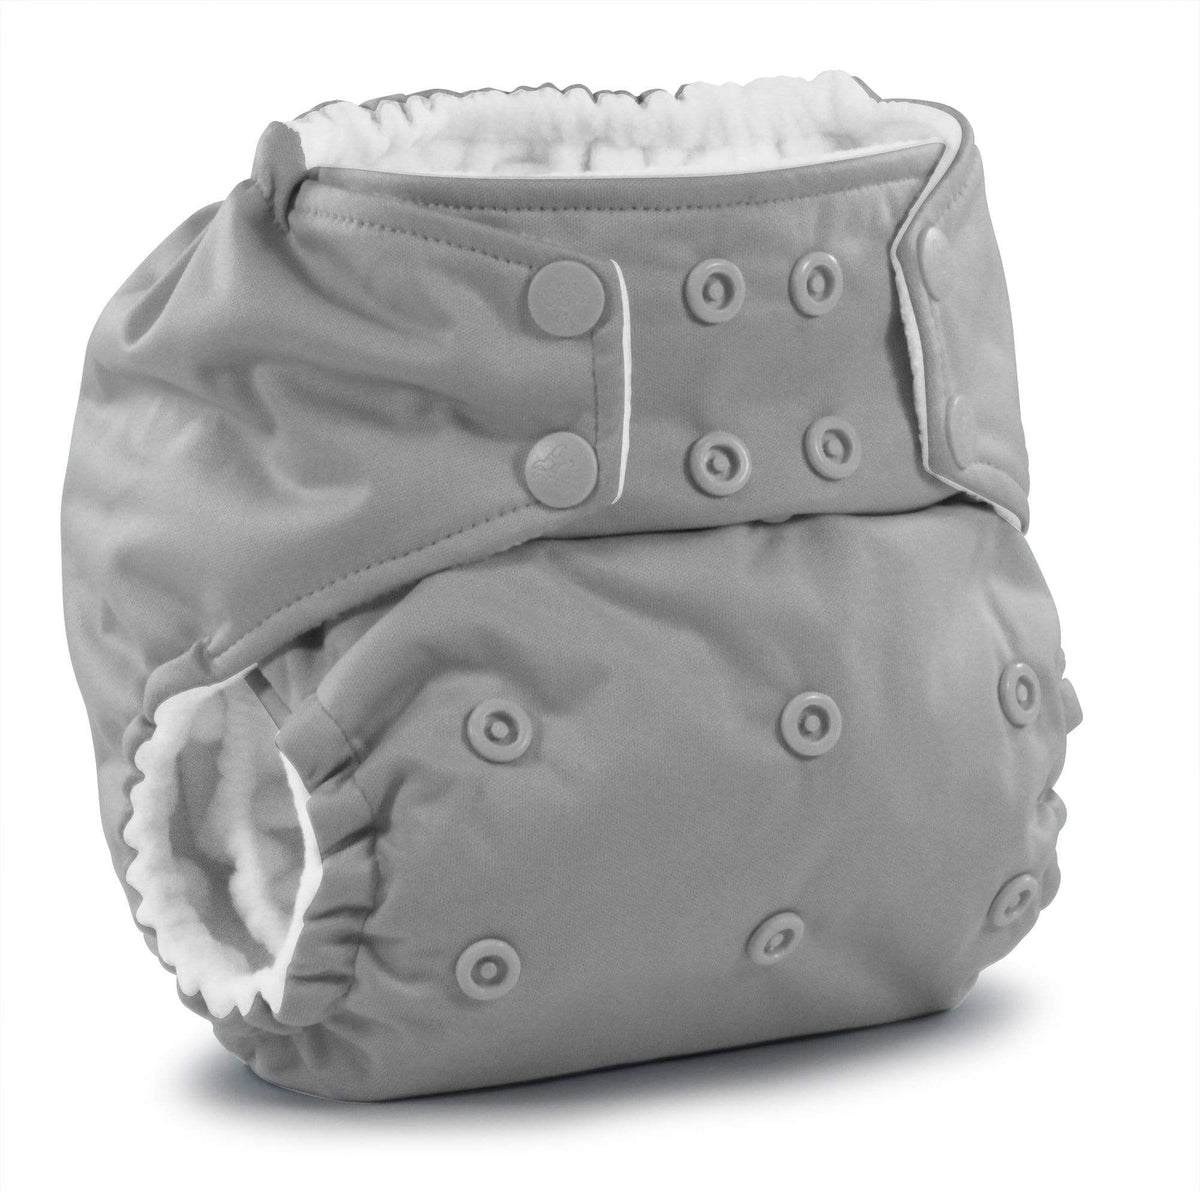 KangaCare Rumparooz One Size Pocket Diaper - Platinum